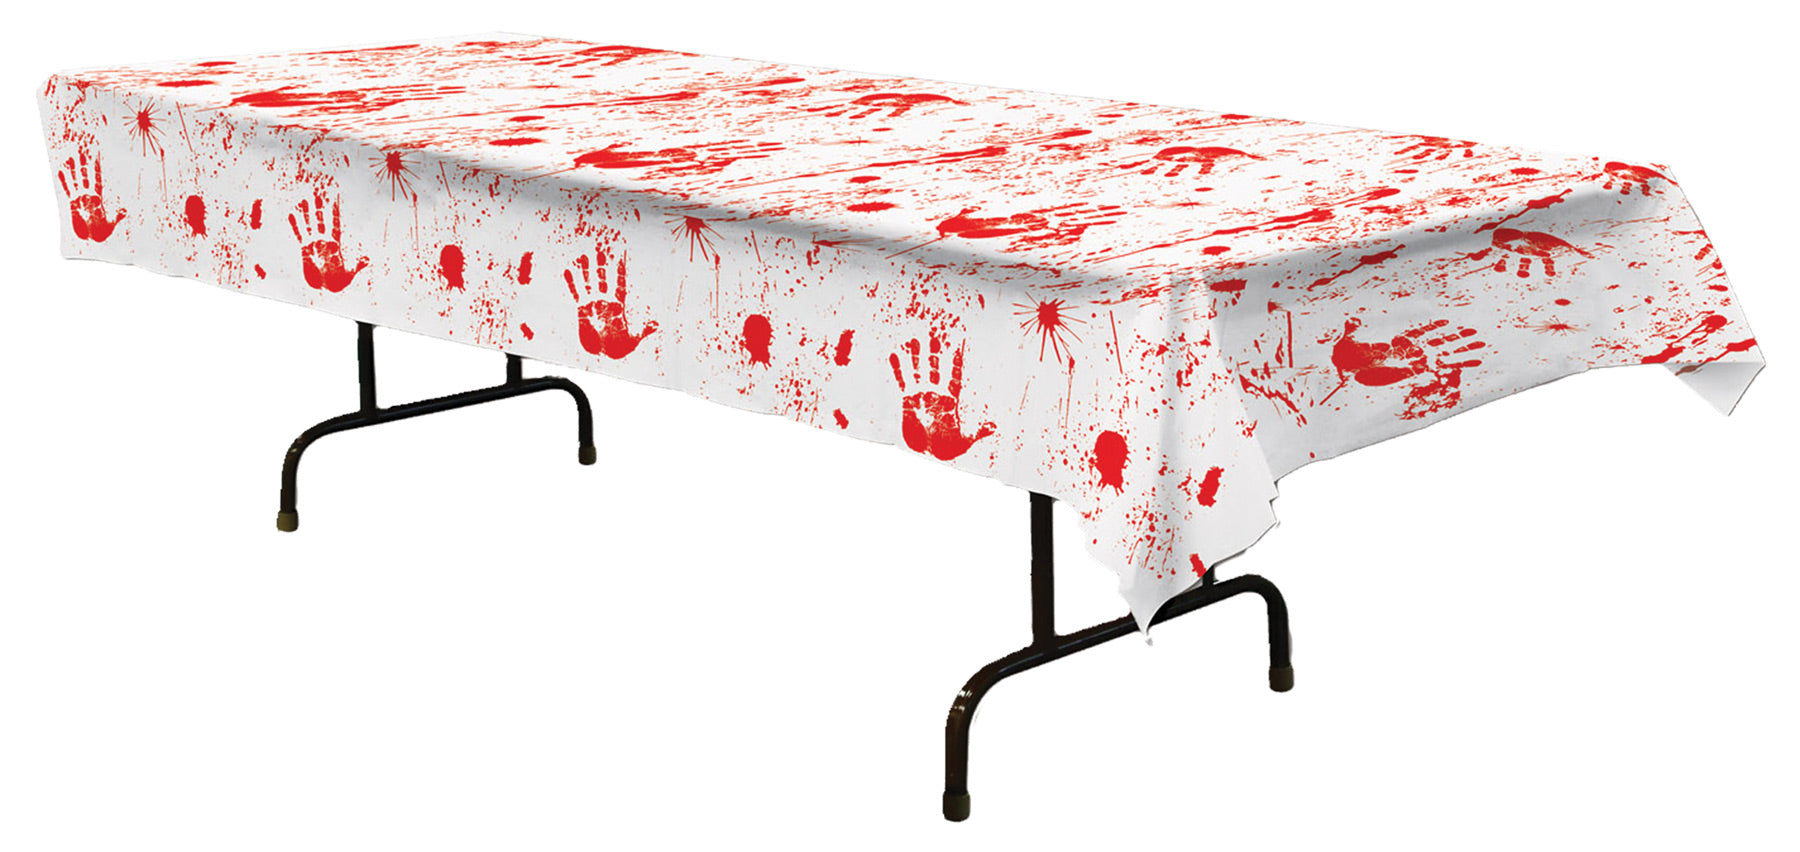 Beistle 00027 Bloody Handprints Tablecover - Case of 12